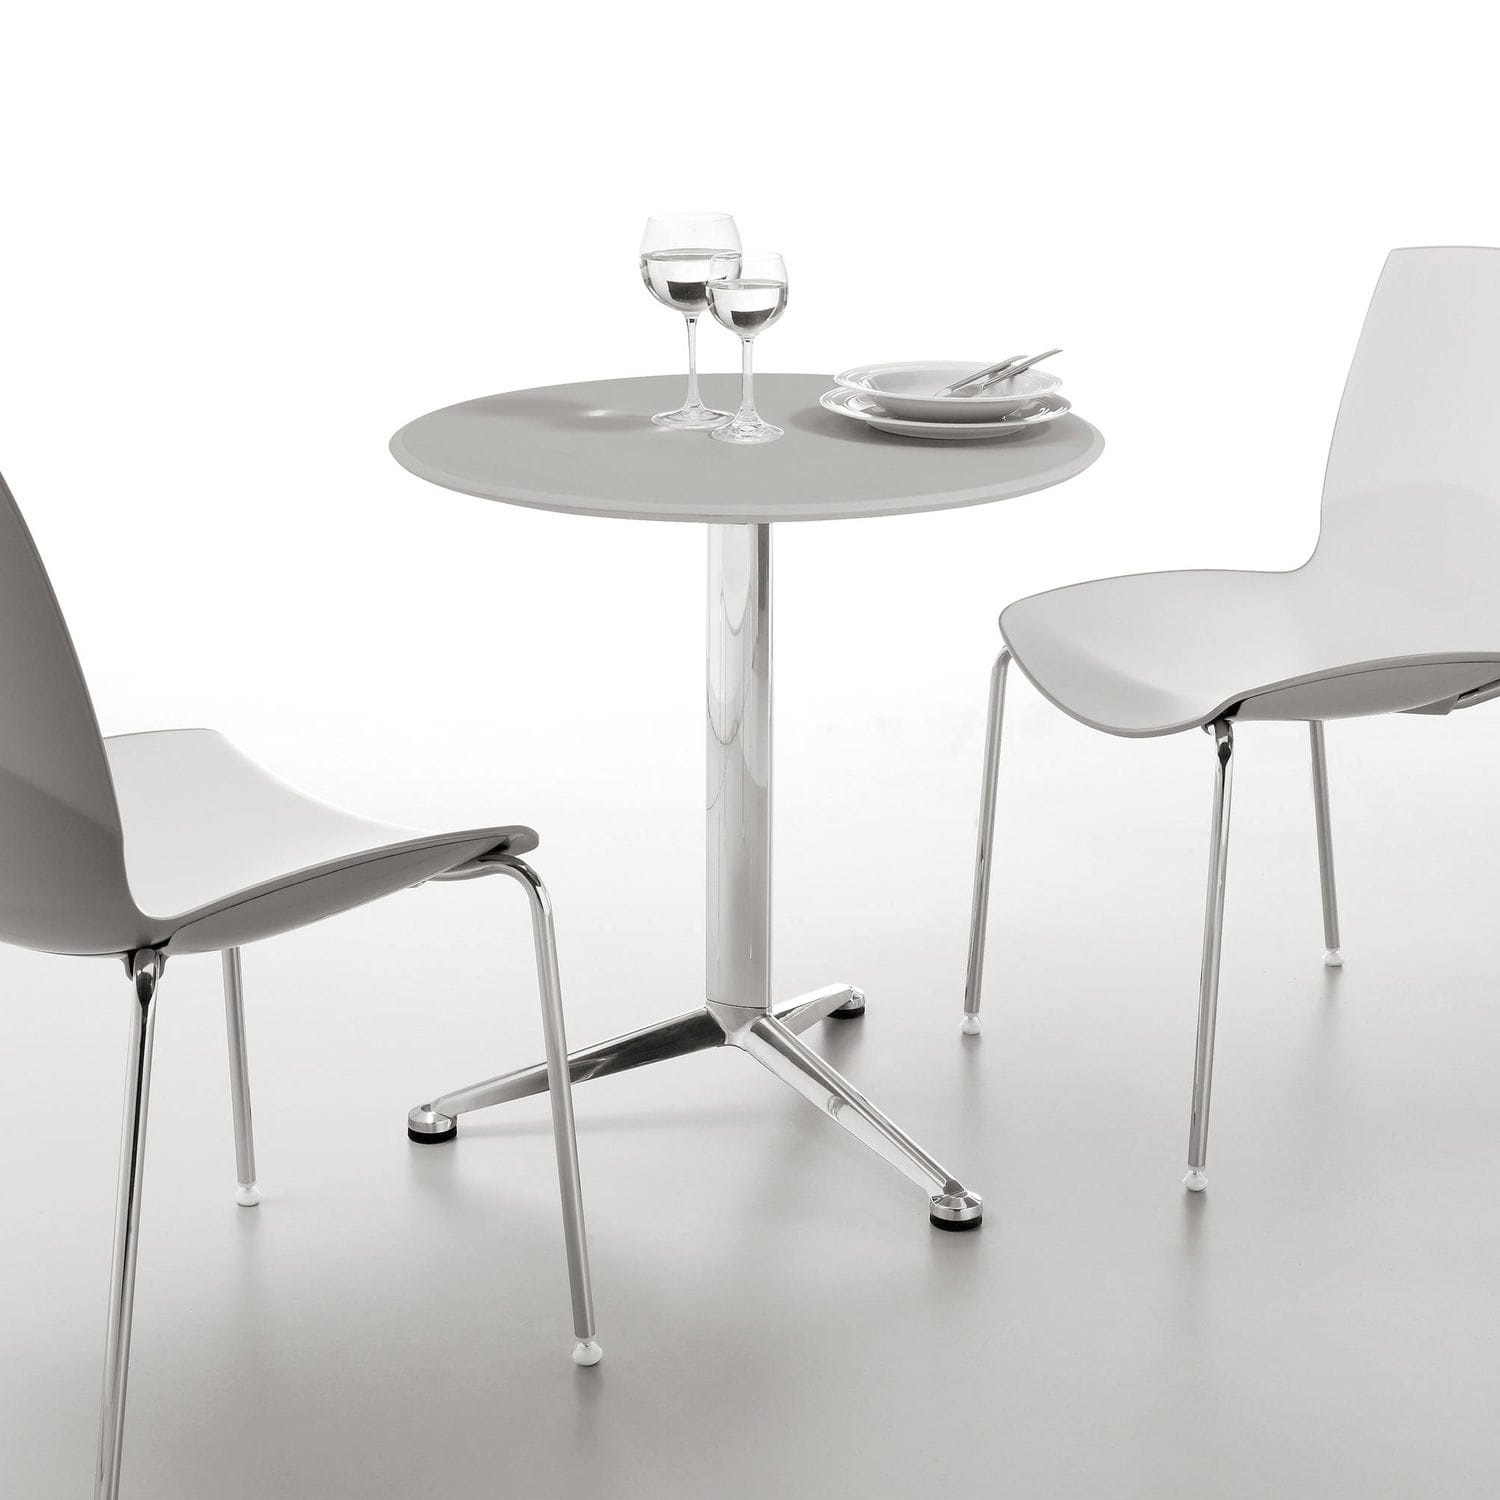 Table Polypropylène Contemporary Table Polypropylene Mdf Laminate 3 Pod By